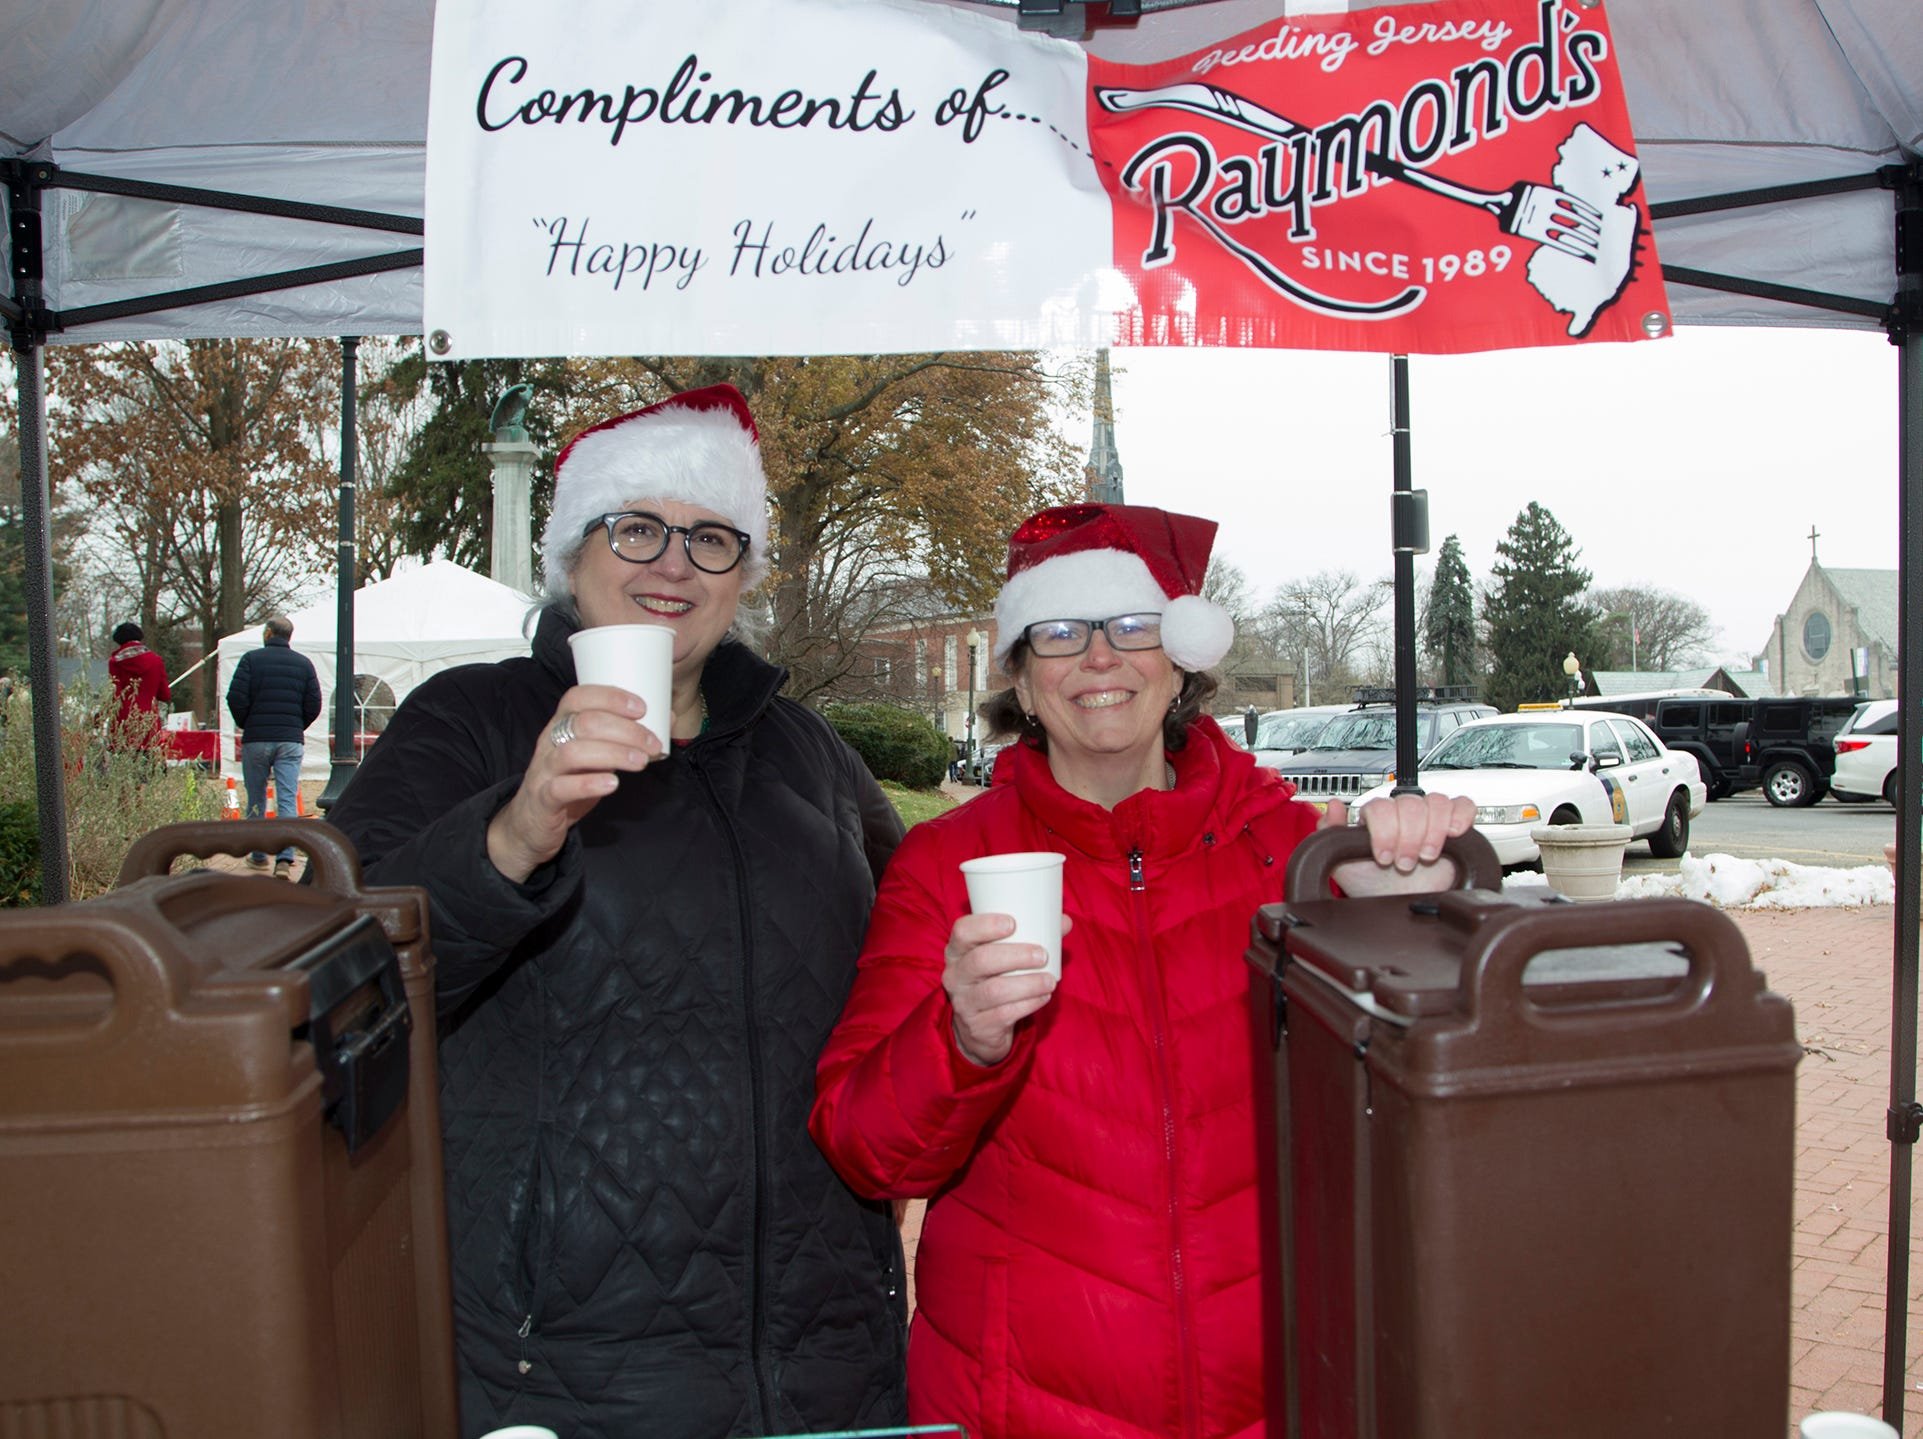 Joanne Ricci and Erin Wendt. The Ridgewood Guild sponsors Winter Fest at Van Neste Park in Ridgewood. 11/24/2018